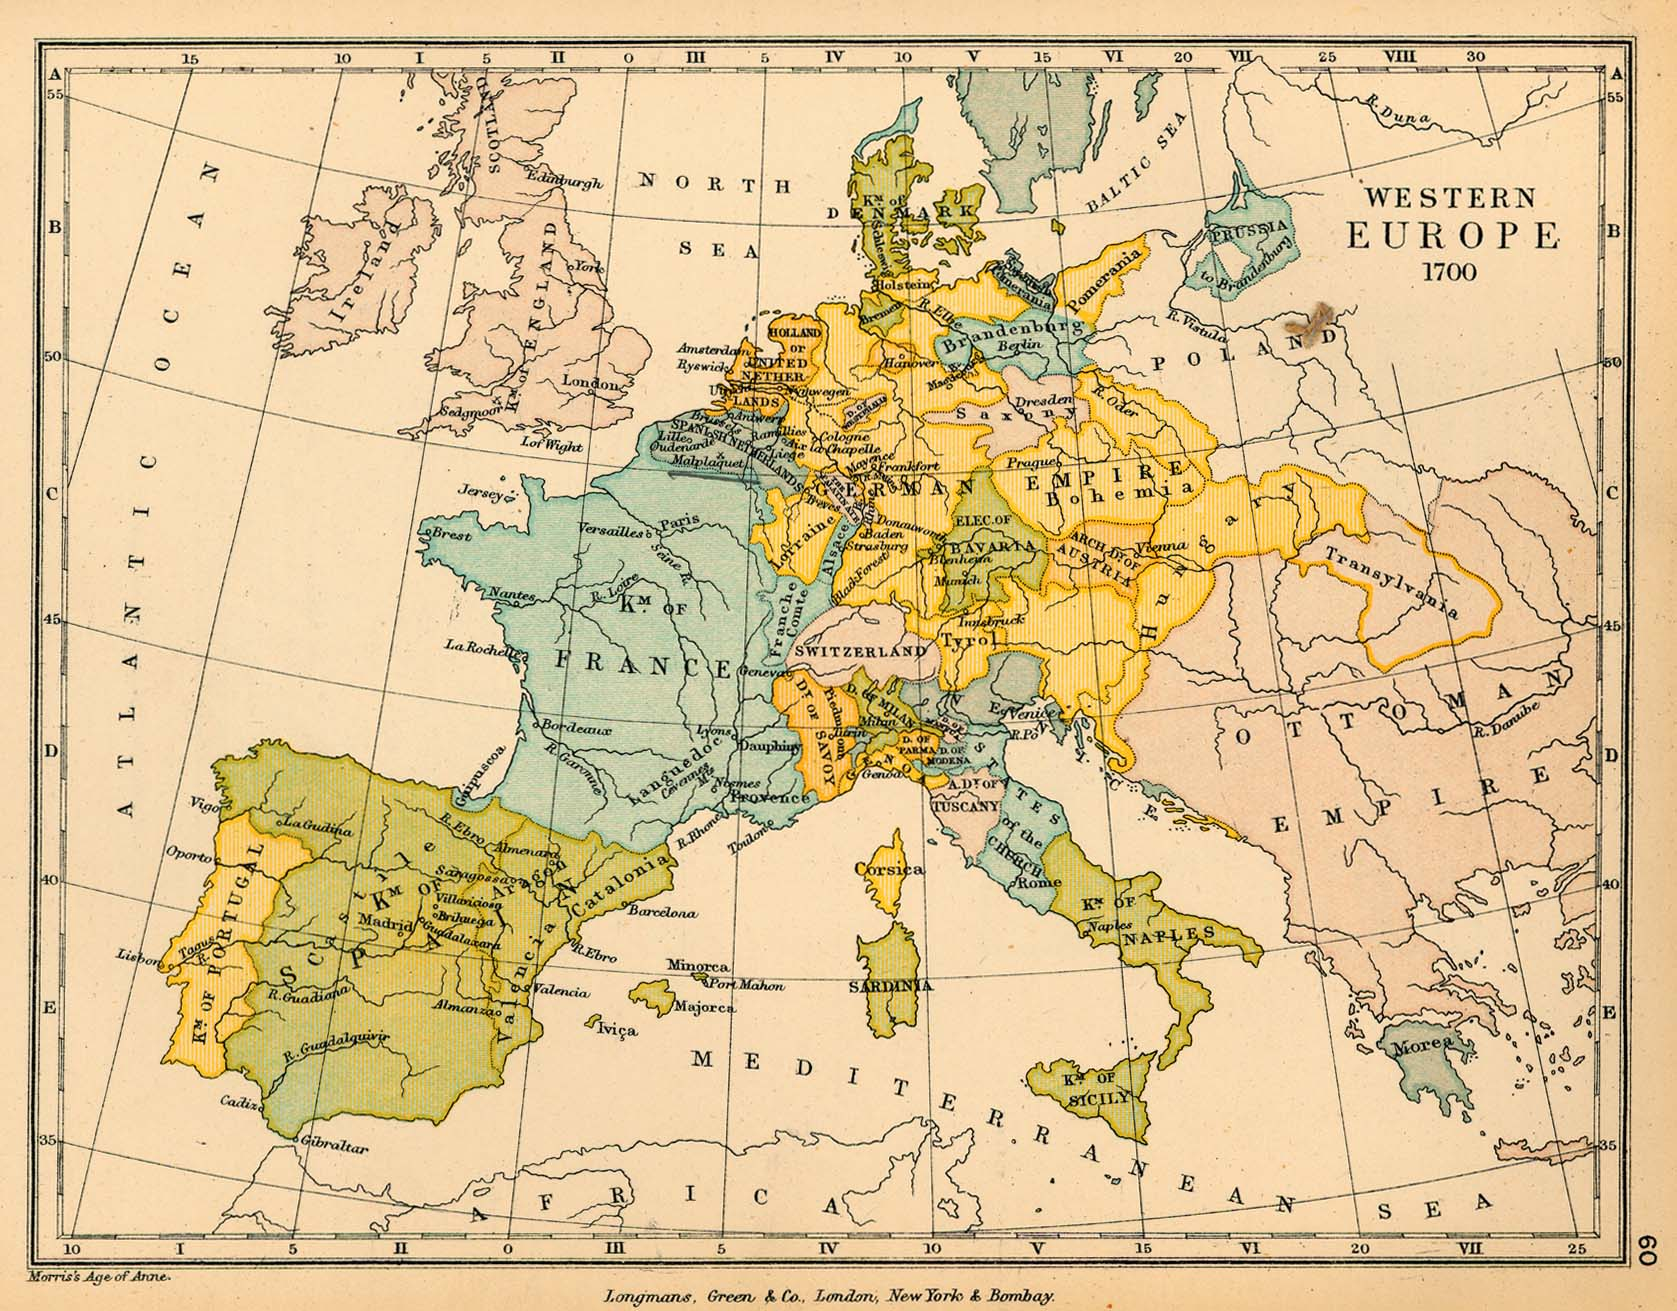 Western Europe in 1700 Full size